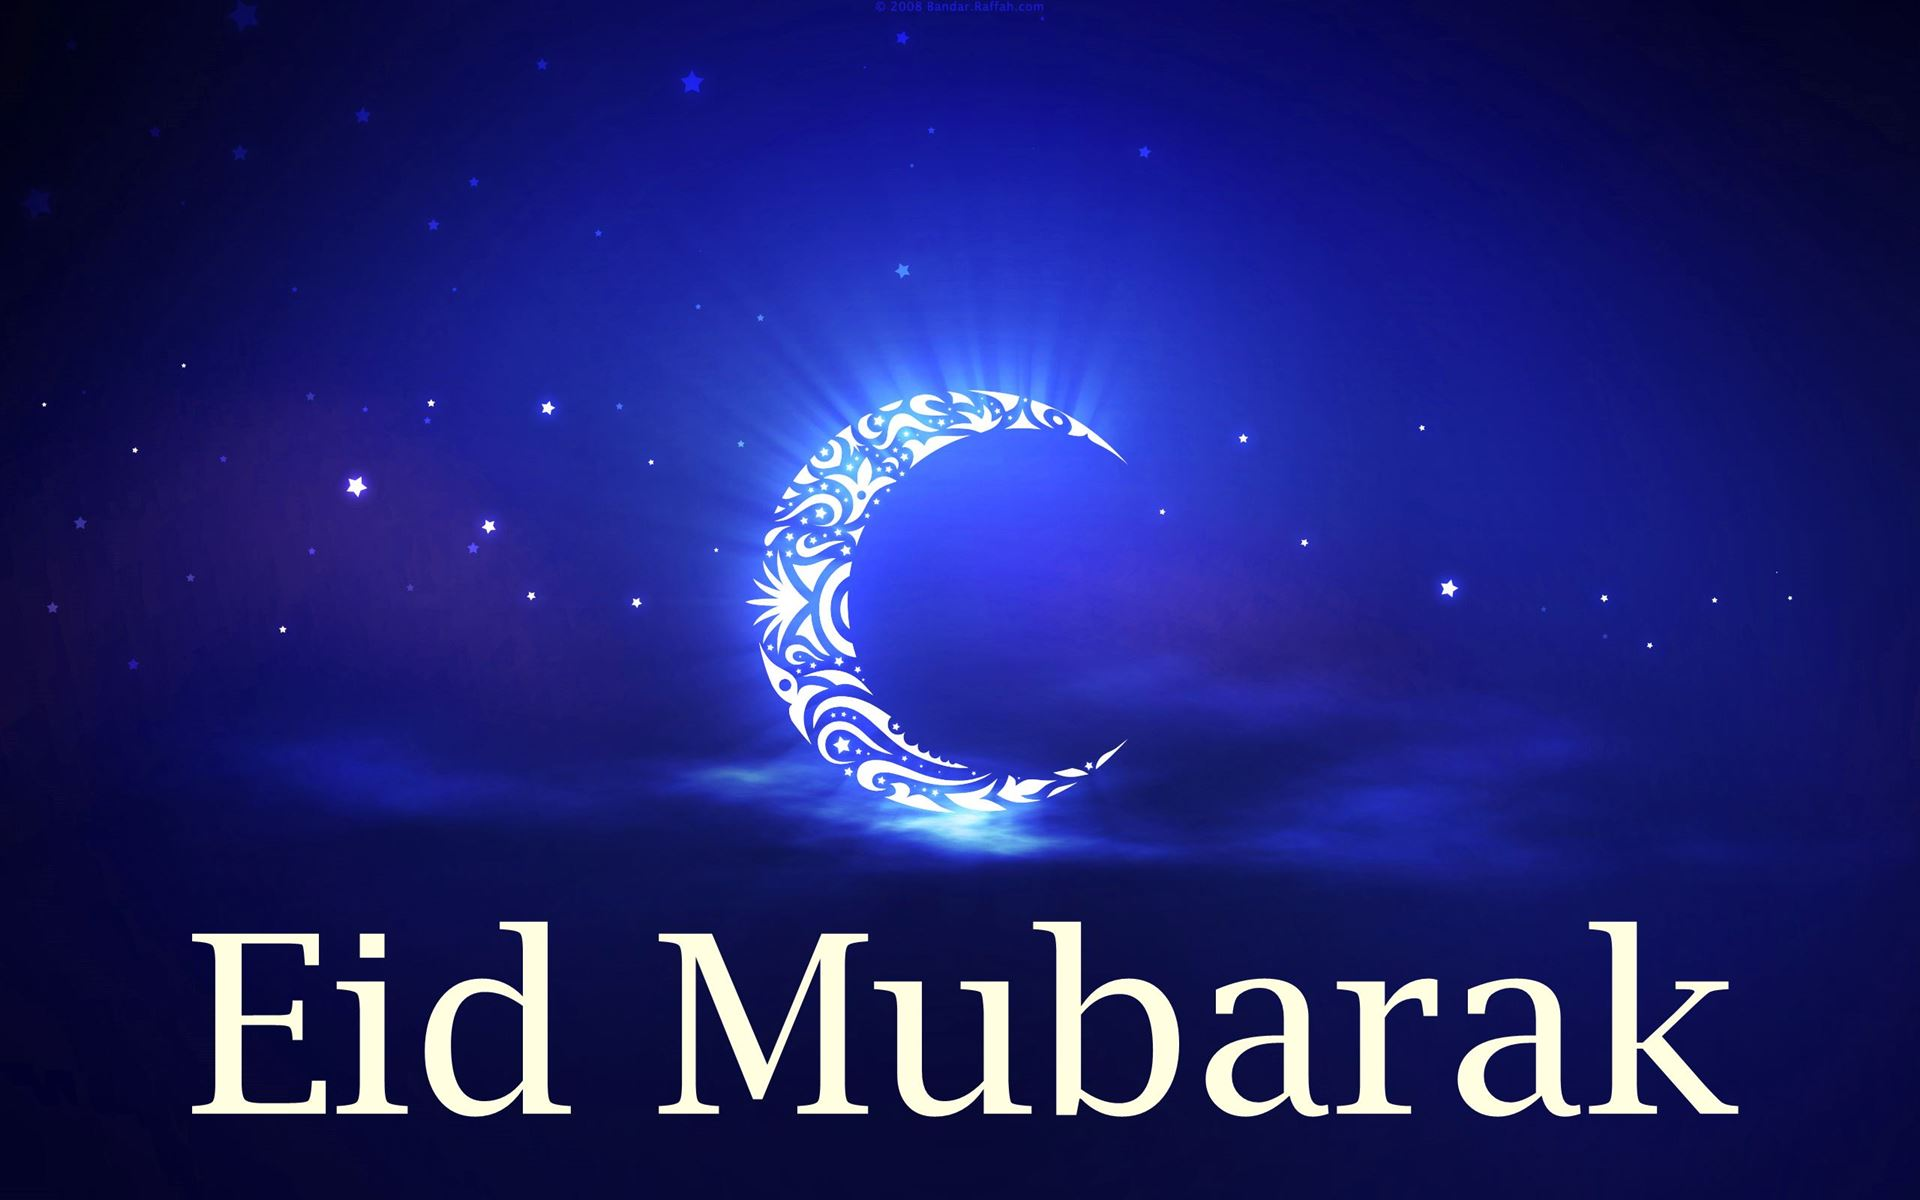 Eid Mubarak 2015 Wallpapers HD Pictures \\u2013 One HD Wallpaper ...